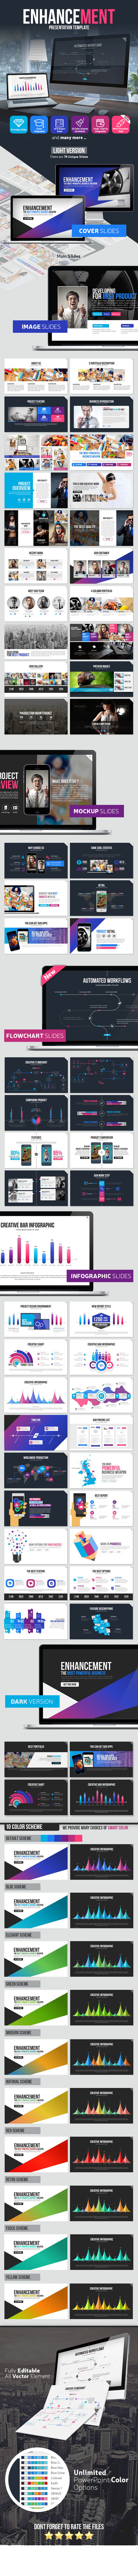 Enhancement Presentation Template - Business PowerPoint Templates